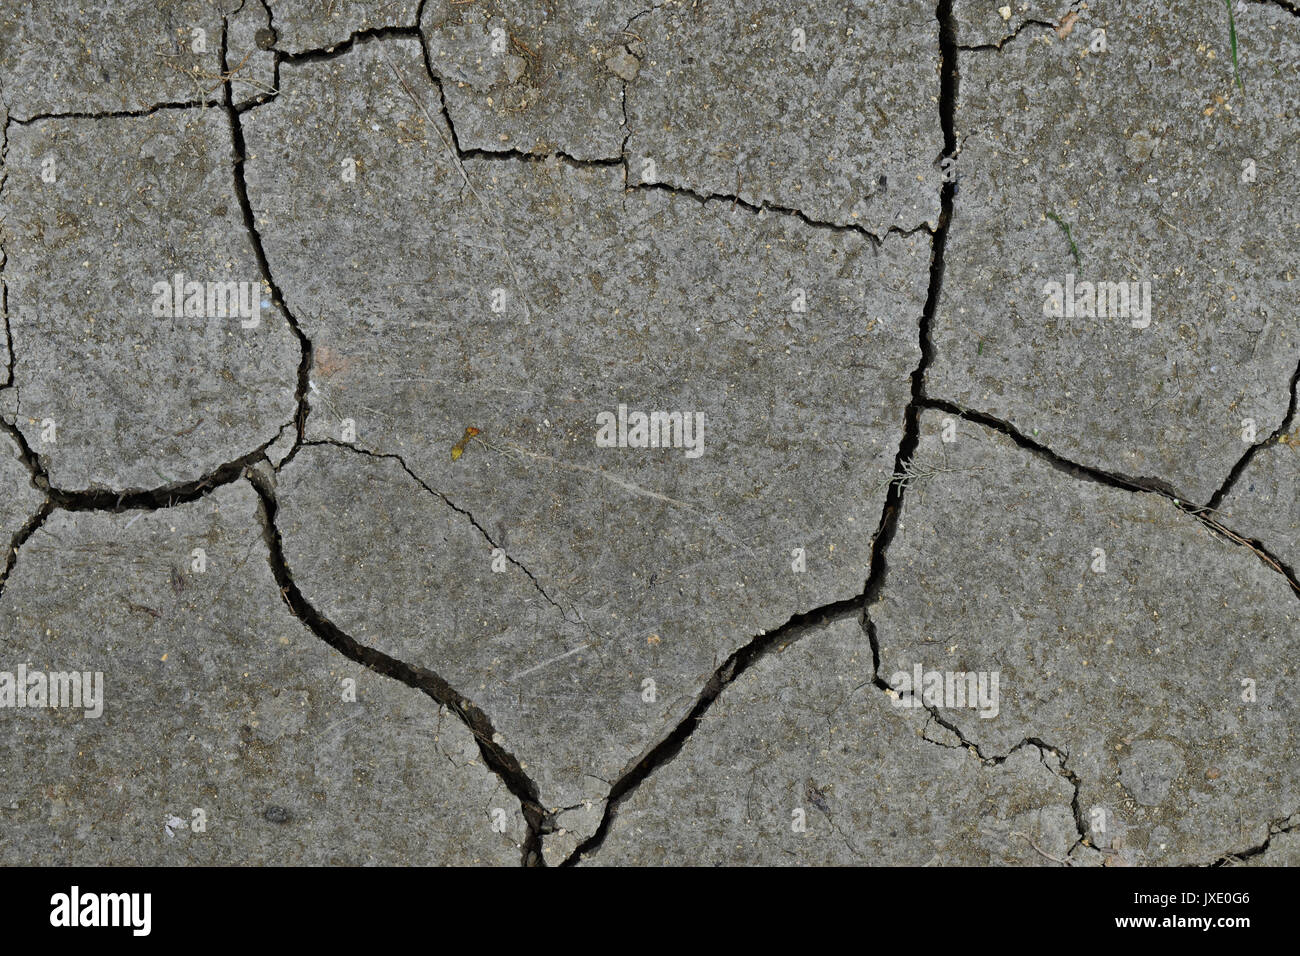 cracked mud texture with interesting shapes and cracks stock photo